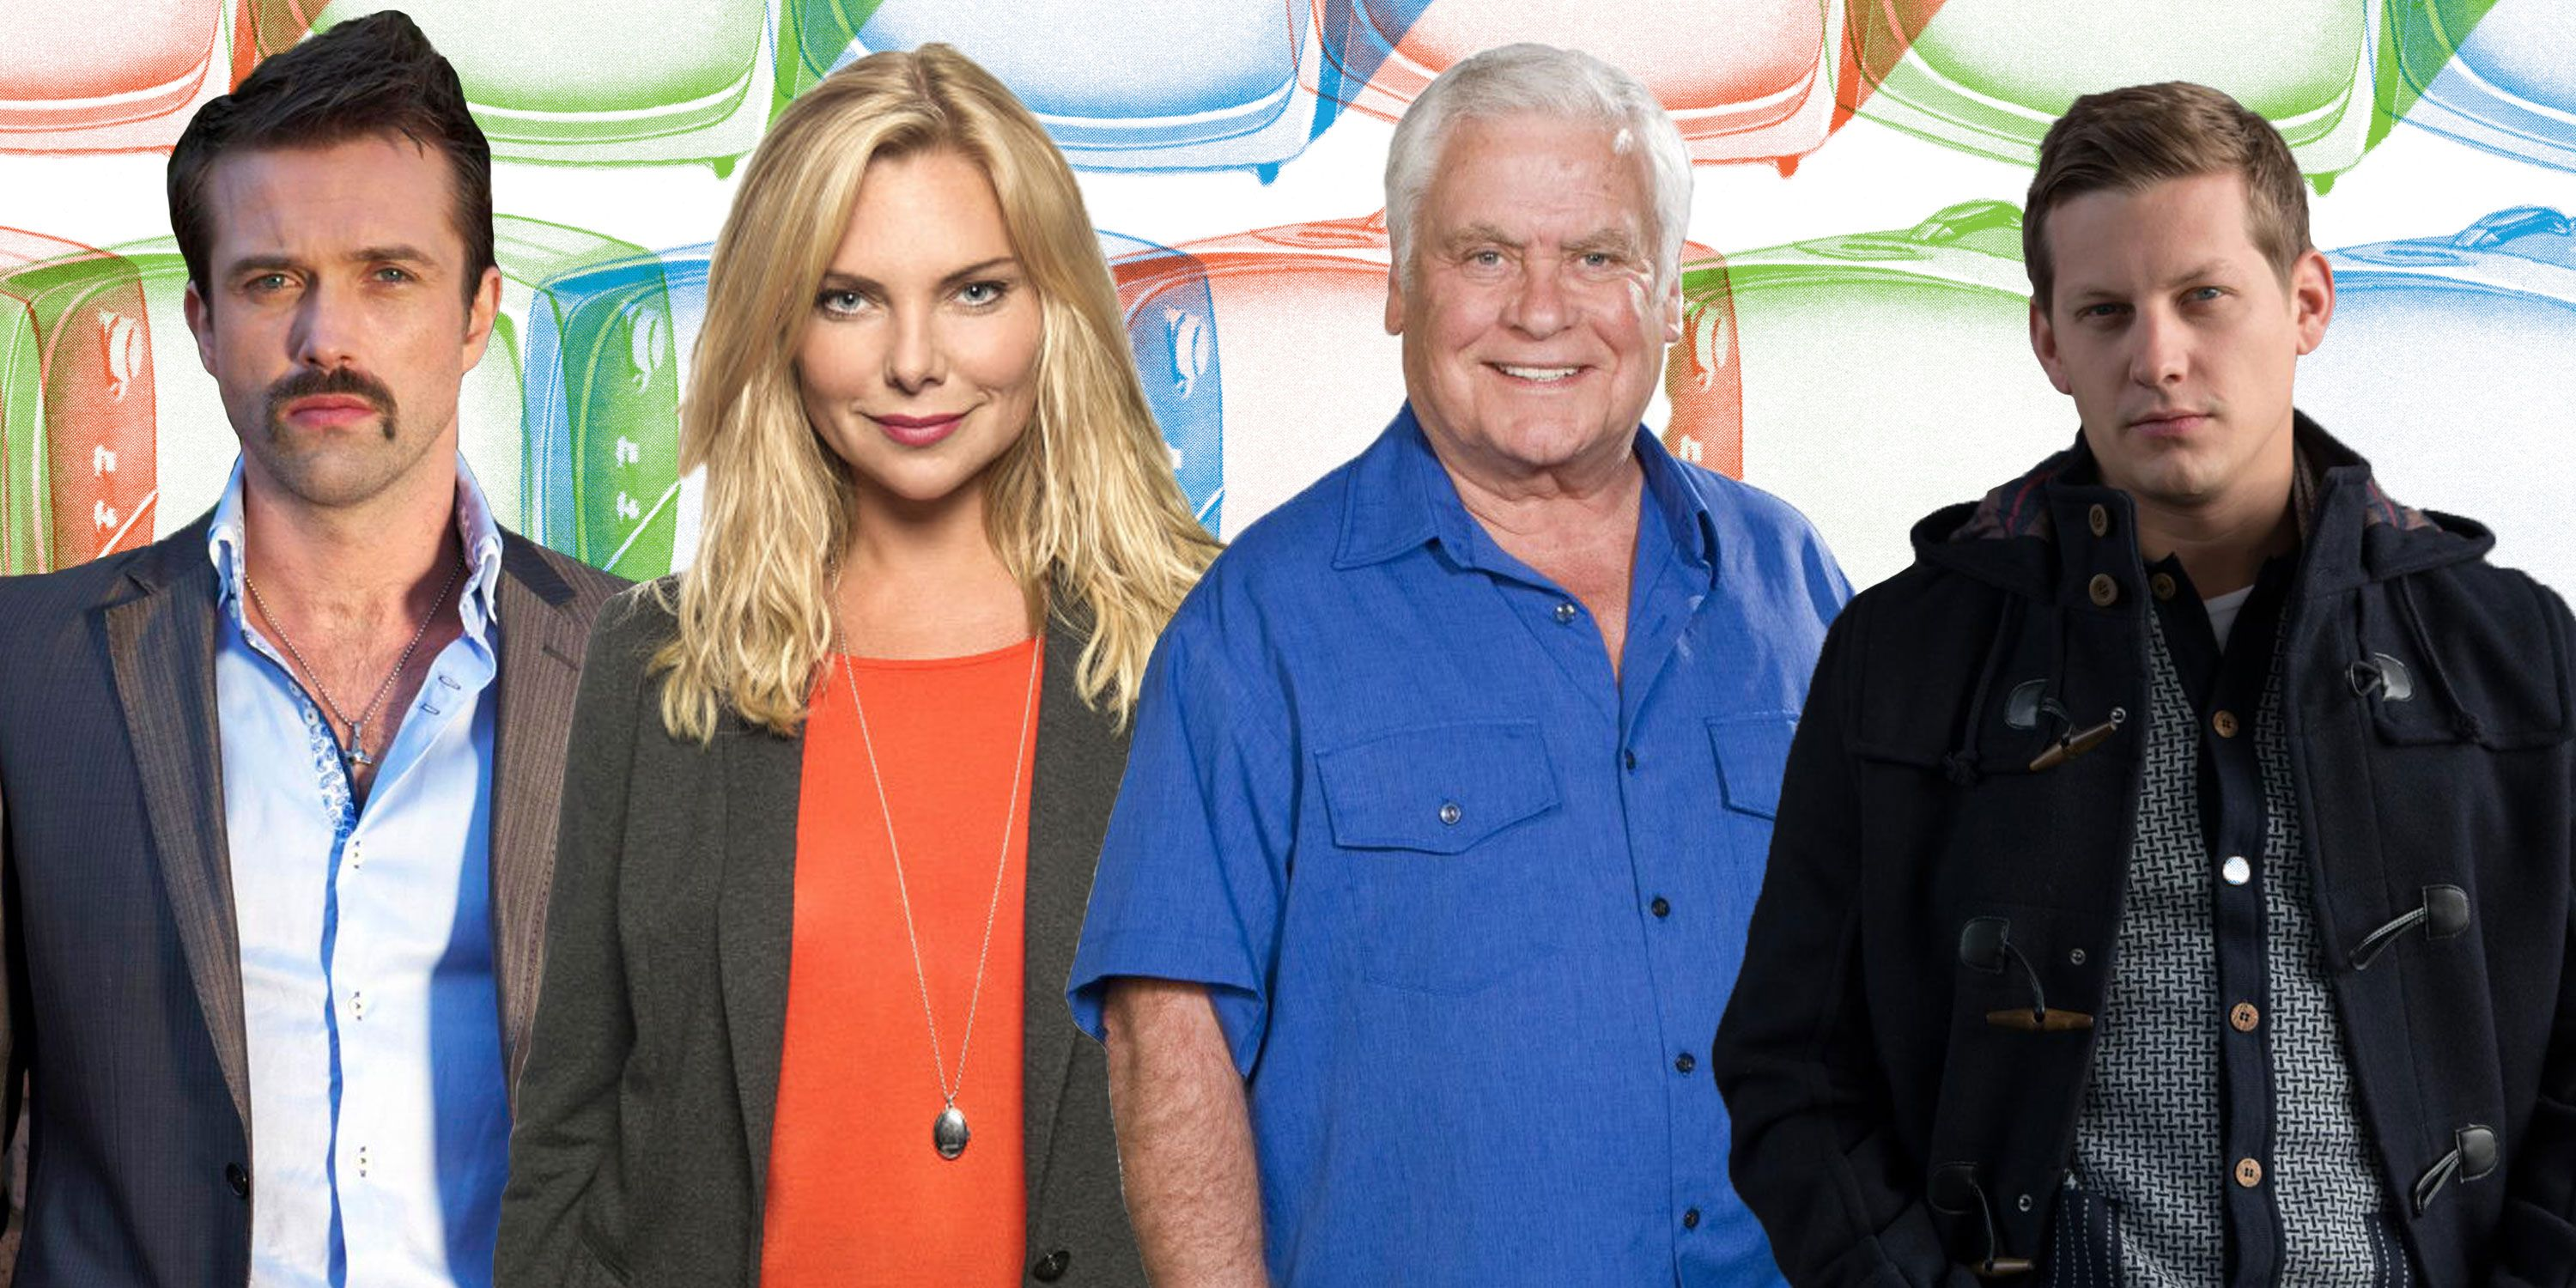 Brendan Brady, Hollyoaks, Ronnie Mitchell, Eastenders, Lou Carpenter, Neighbours, John-Paul McQueen, Hollyoaks